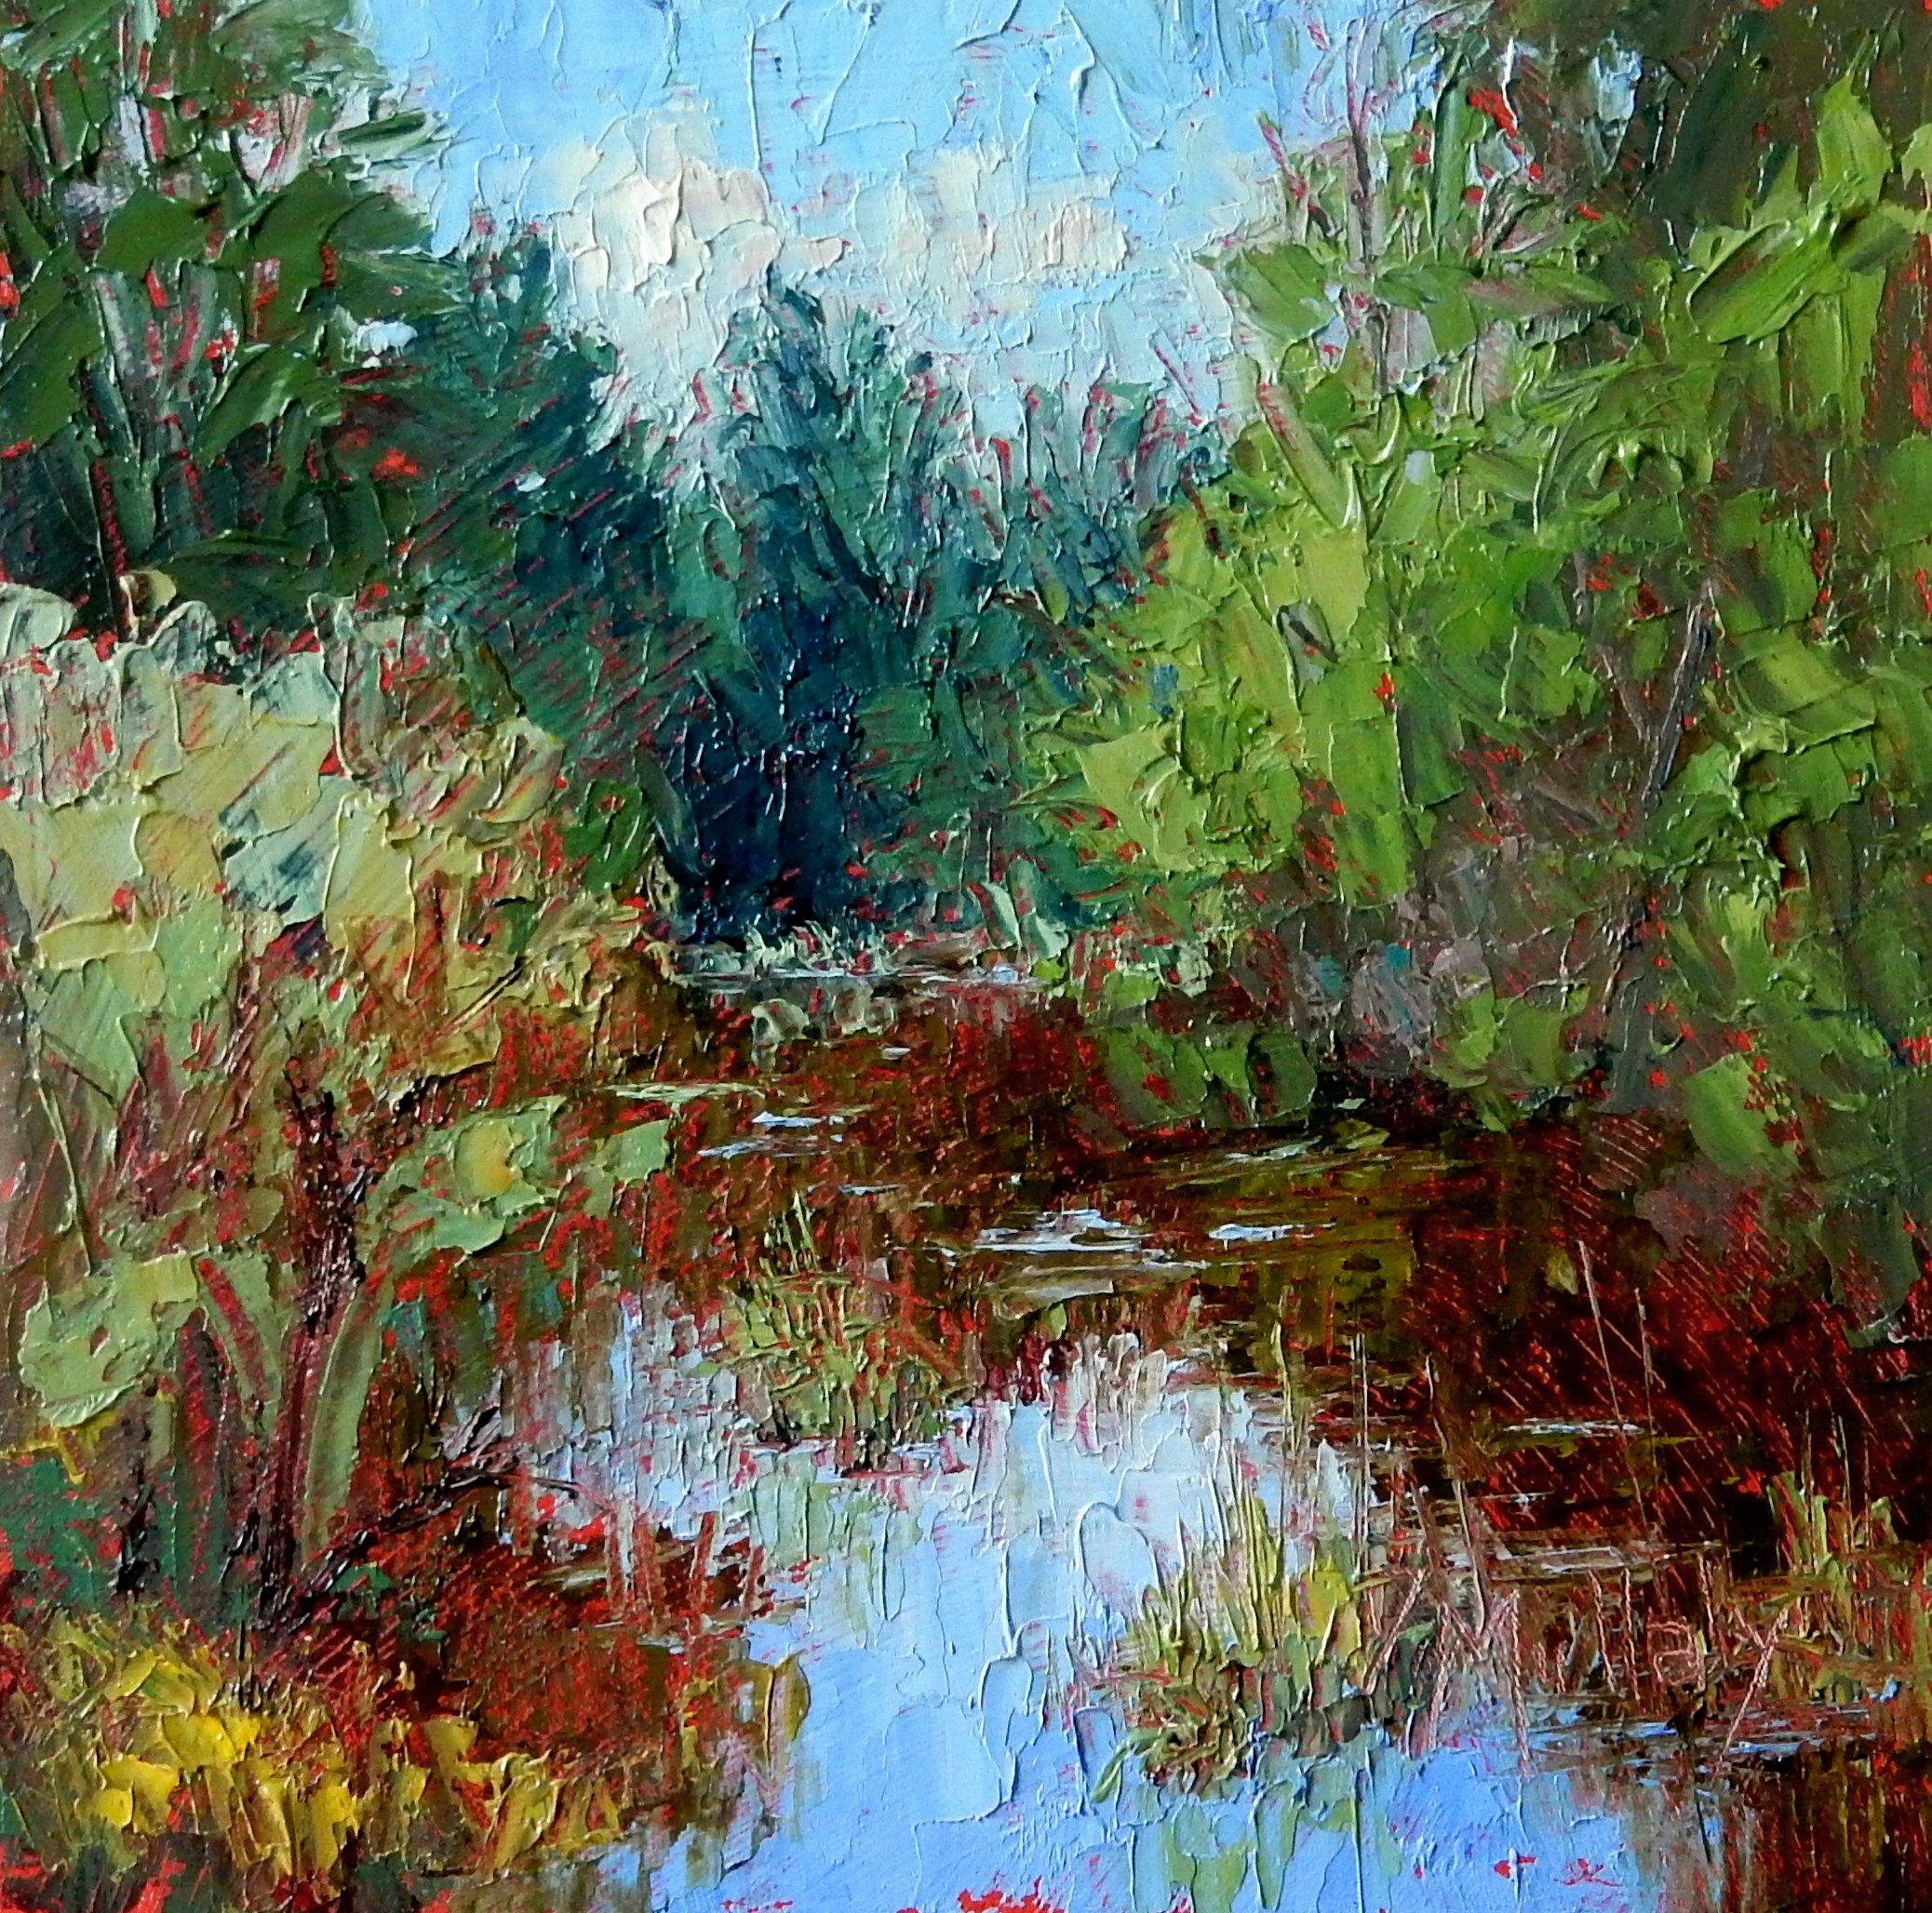 Light and Life, Plein Air Oil Paintings by Diane DuBois Mullaly at Adkins Arboretum